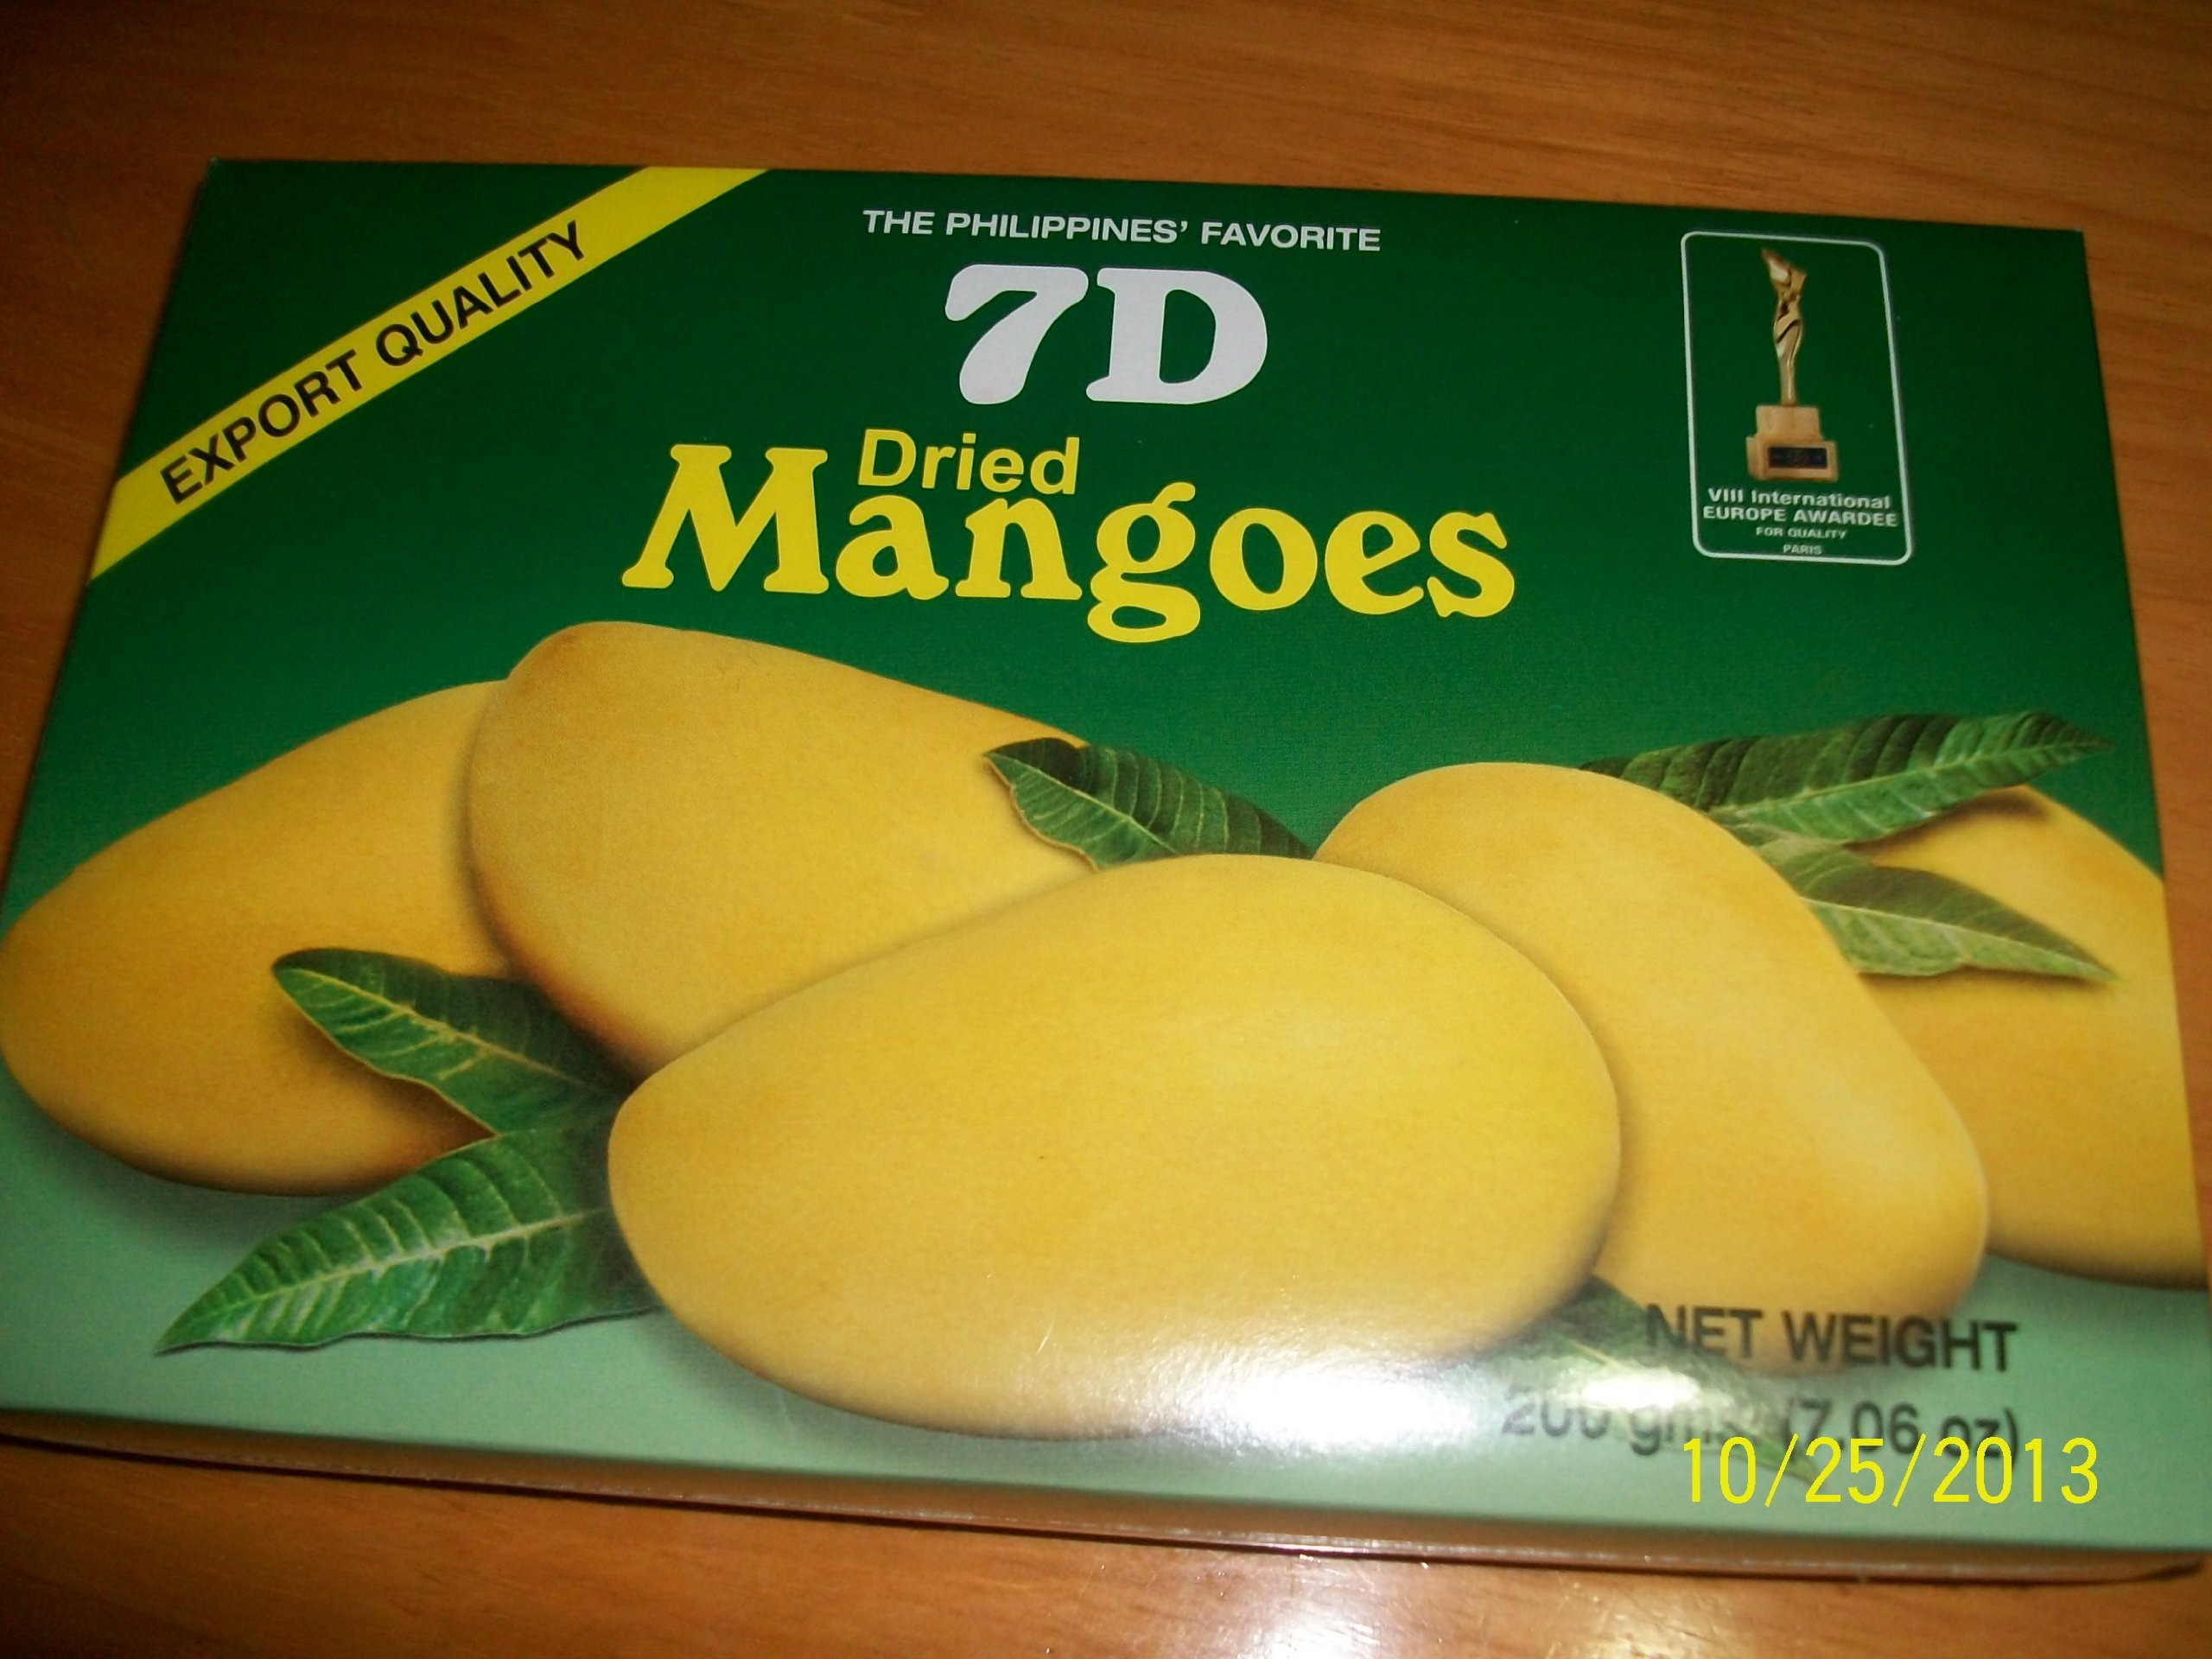 7D Dried Mangoes Philippines' Favorite 1 box (200g)